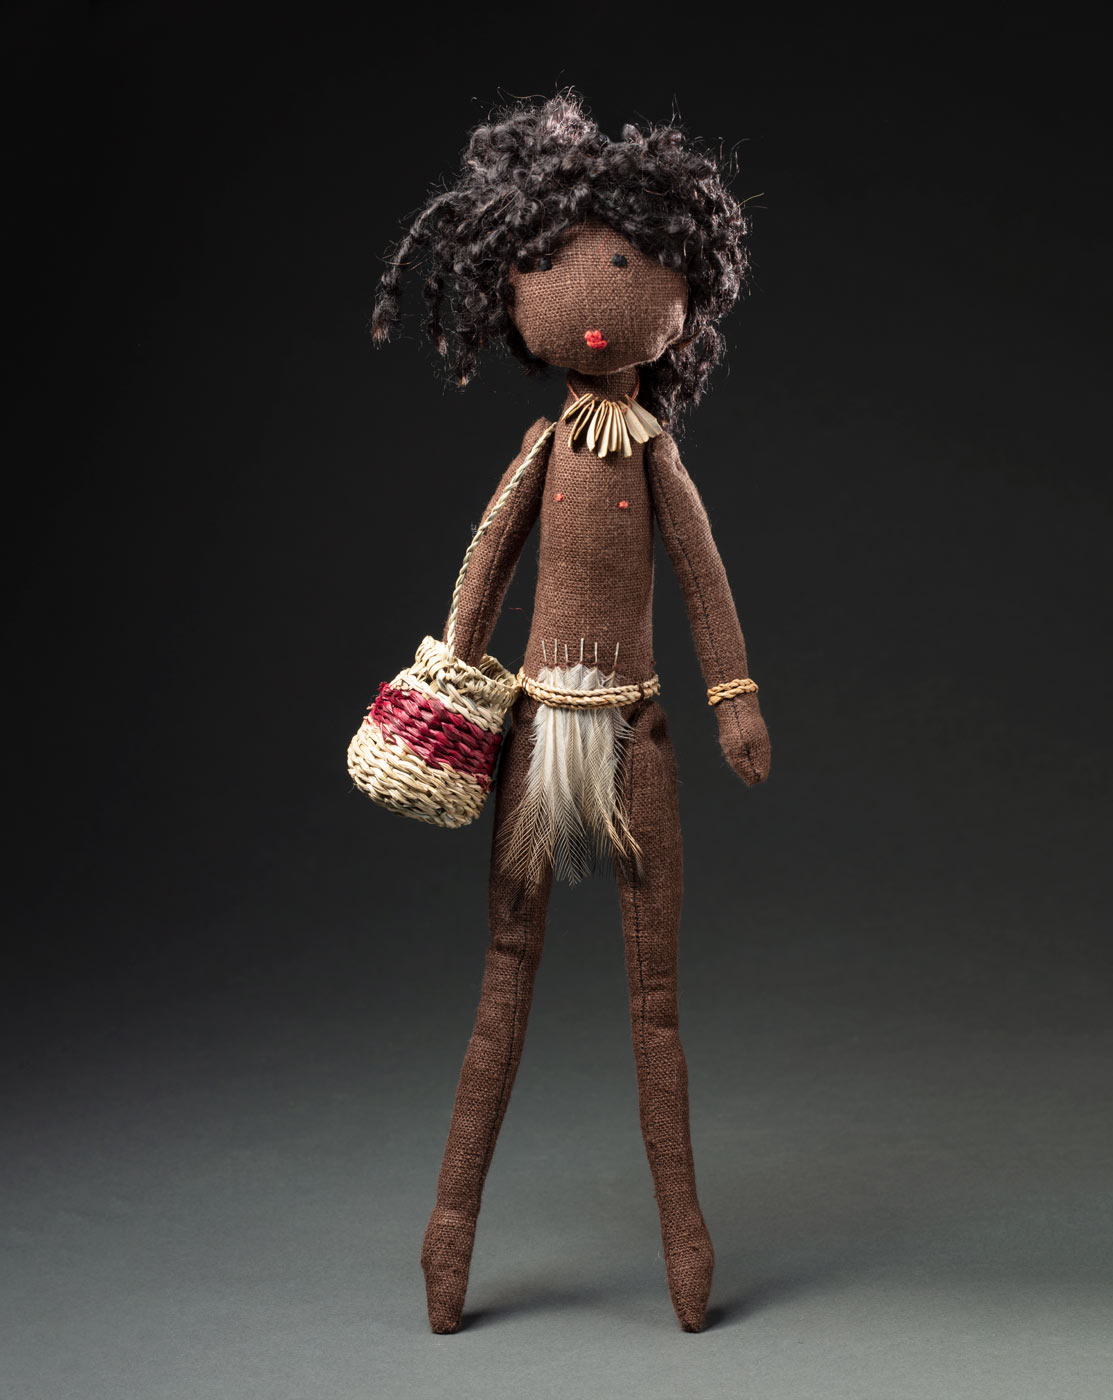 A soft sculpture based on a female ancestor creator spirit Ngyardi, she is wearing a belt with feathers, has black wool hair and hand stitched black eyes and red lips. She is wearing a fibre bangle a necklace with leaves. She has a fibre work woven basket with her. - click to view larger image